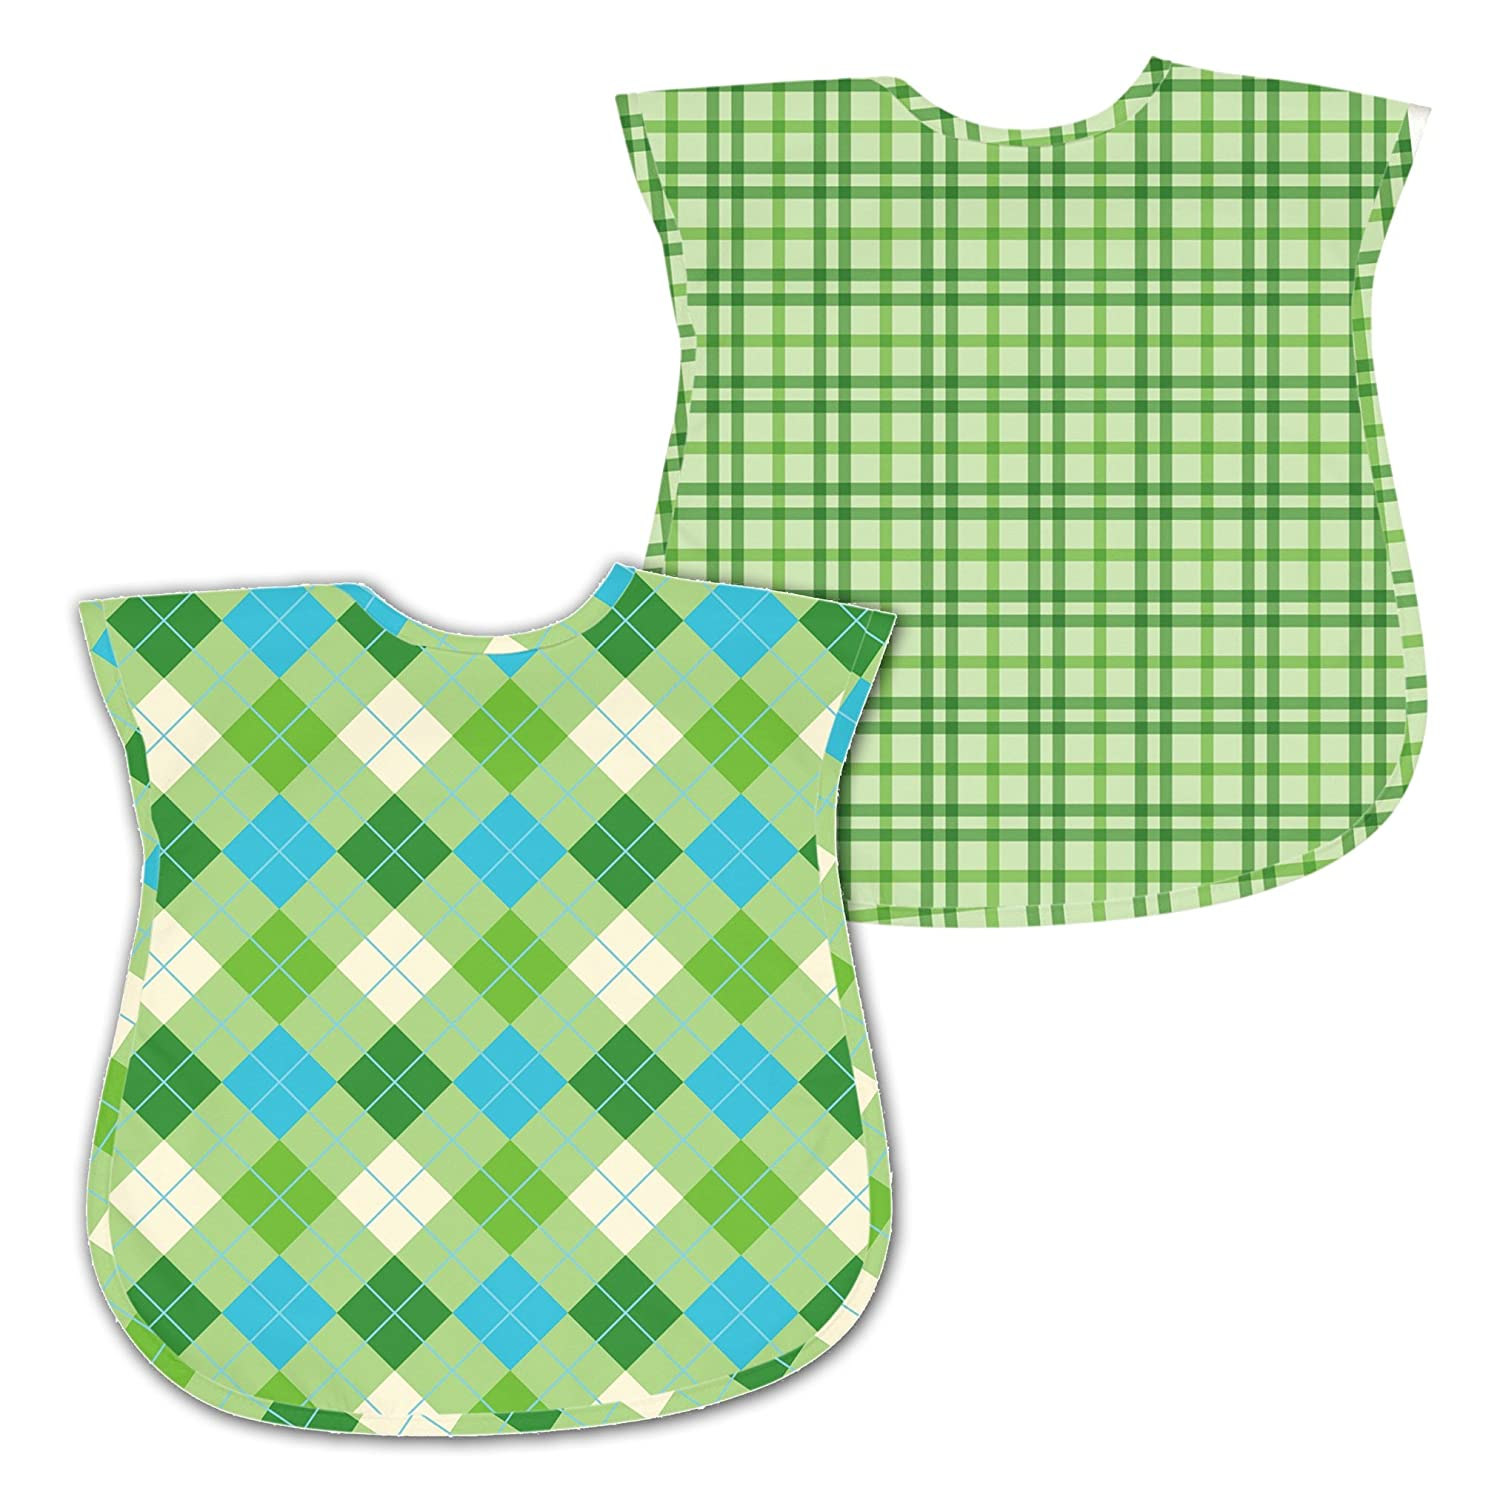 green sprouts 12-24 Months Best Toddler Waterproof Bib, Green, 2 Pack (Discontinued by Manufacturer)